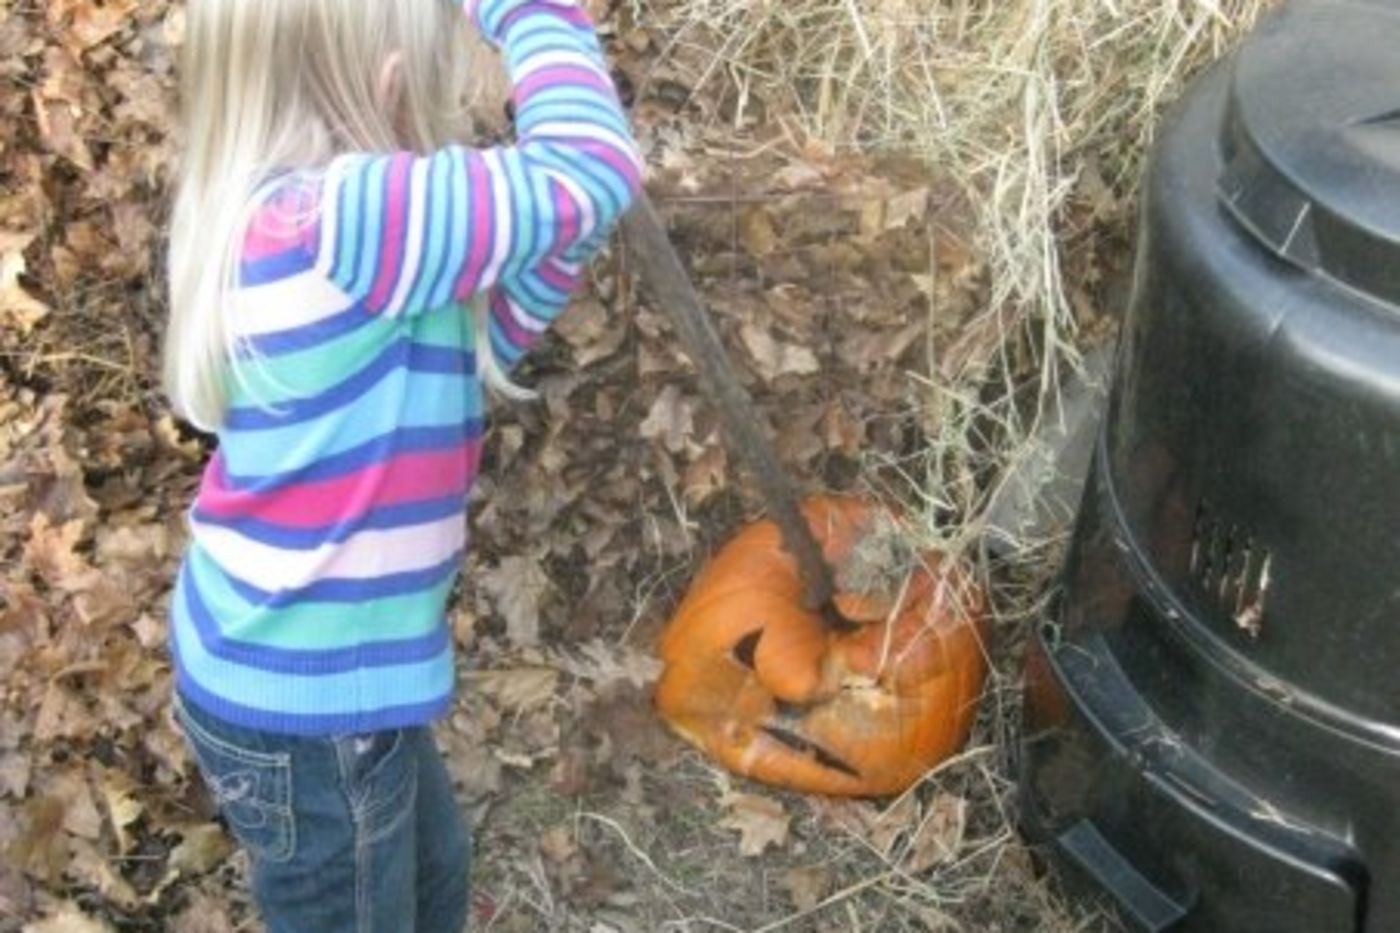 A girl uses a long stick to push an old Halloween pumpkin into a compost pile